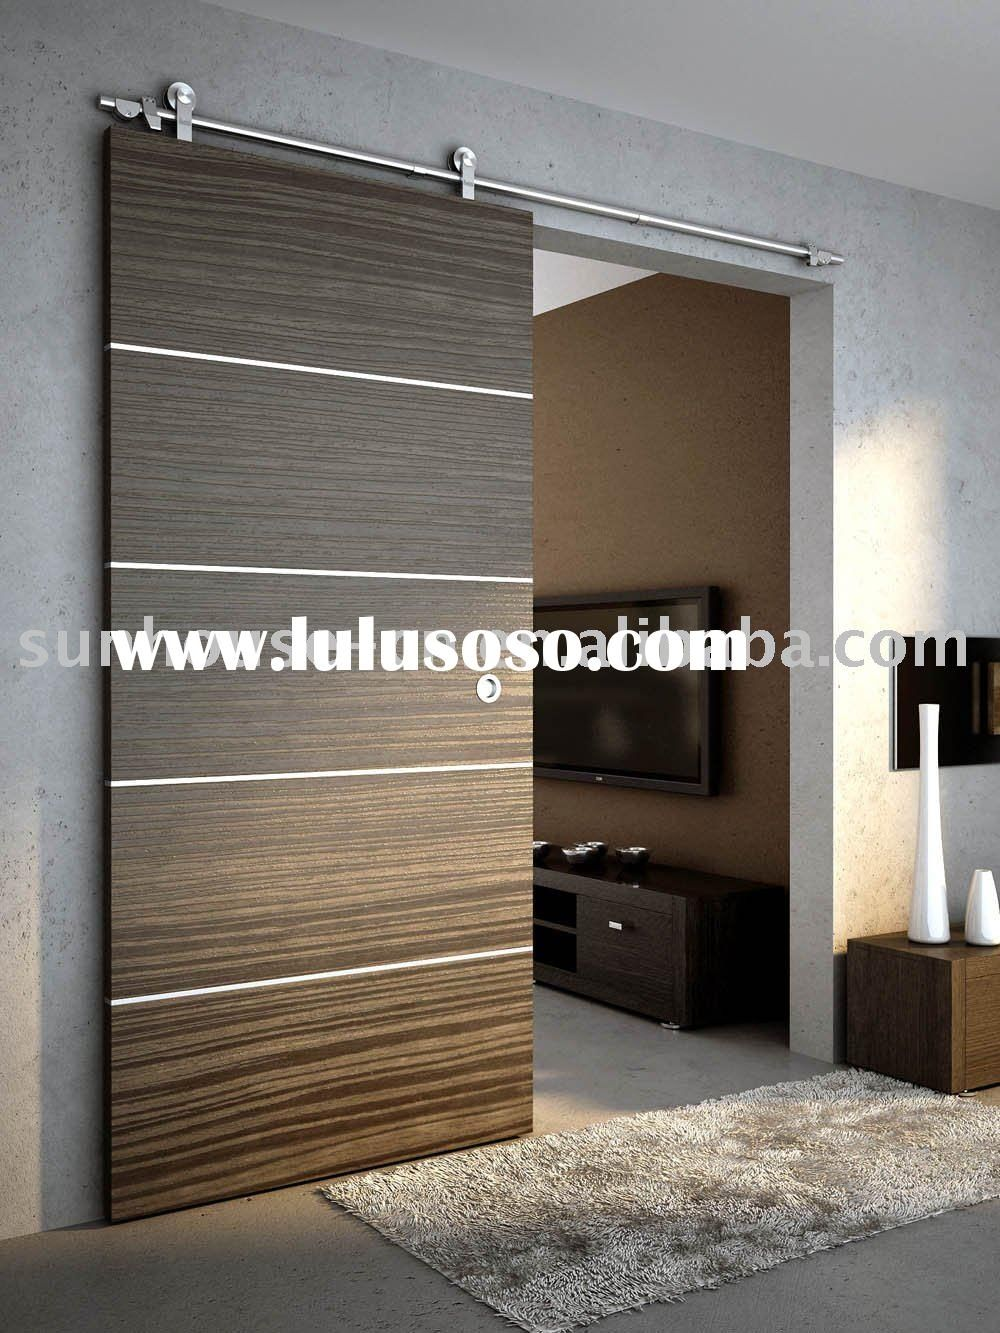 Wood sliding door sliding door fitting home decor for Sliding panel doors interior